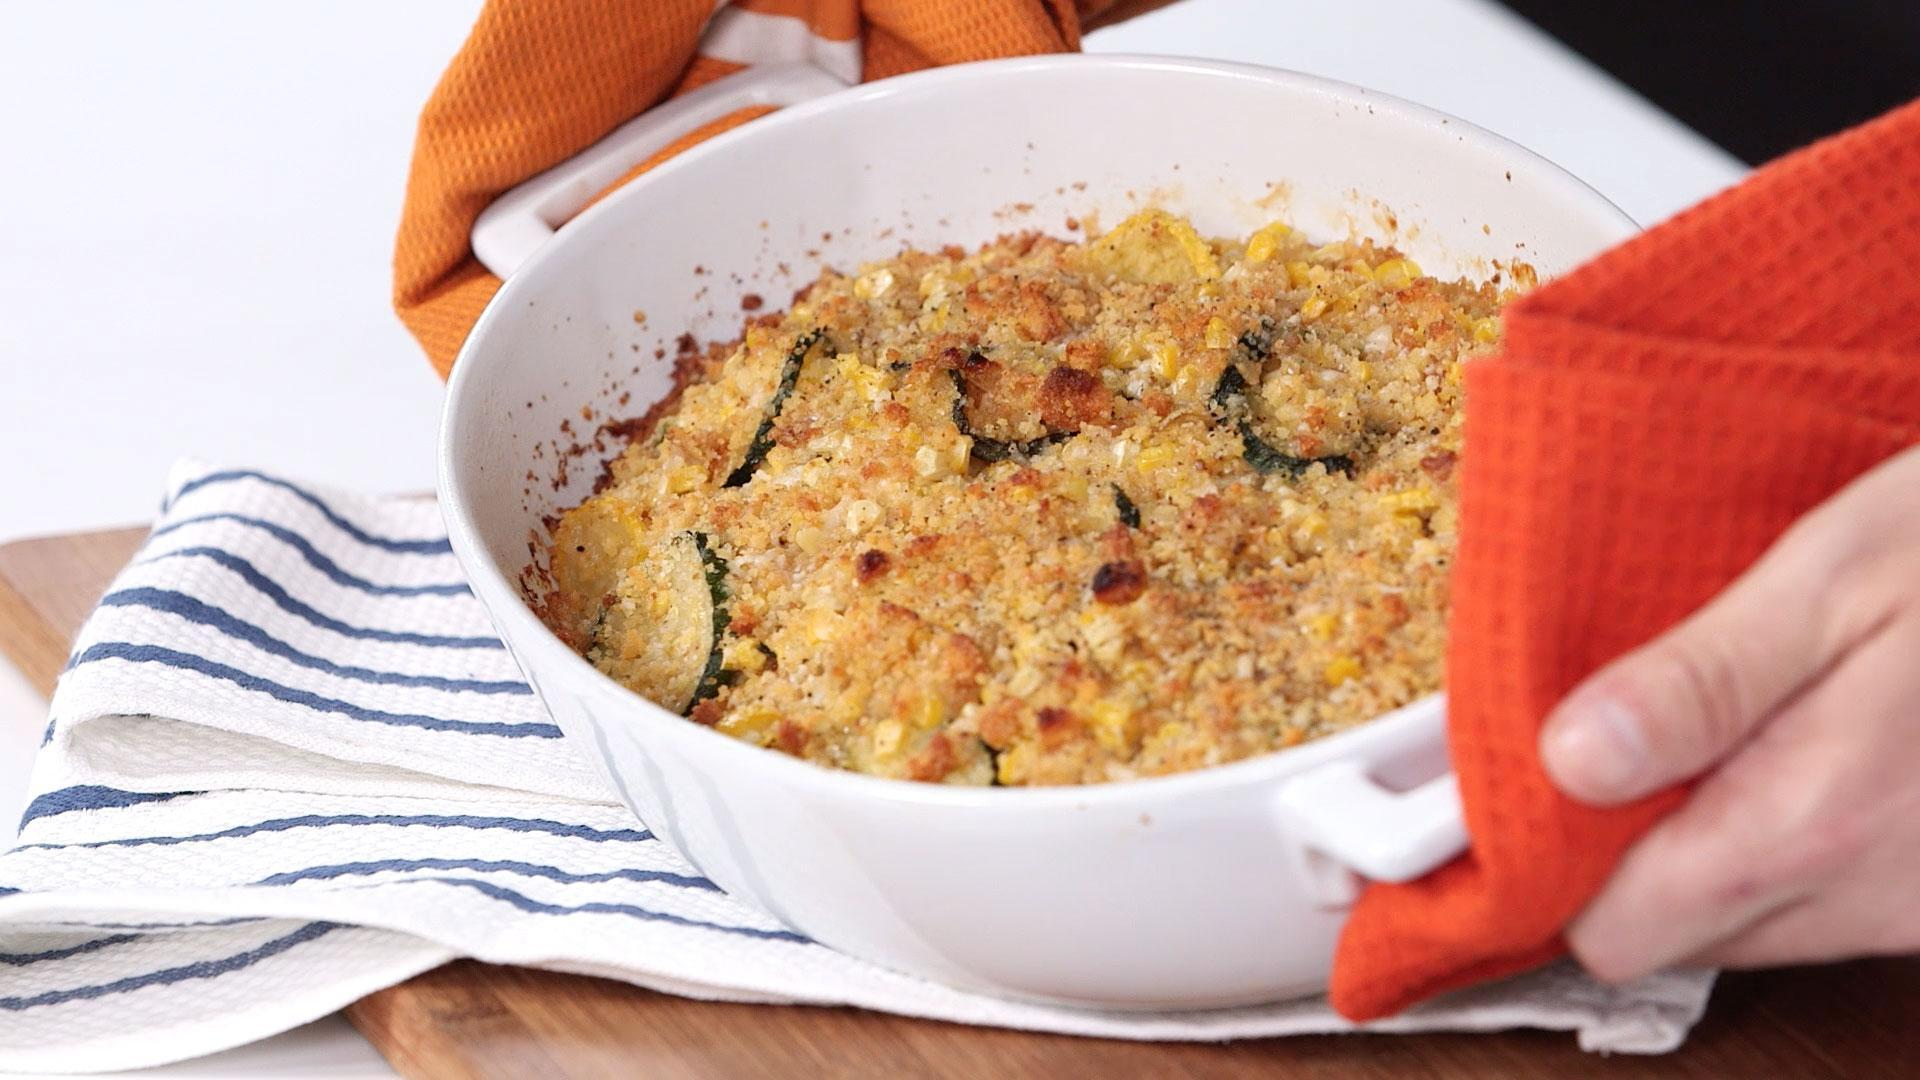 How to Make a Squash and Kernel Corn Casserole with Cornbread